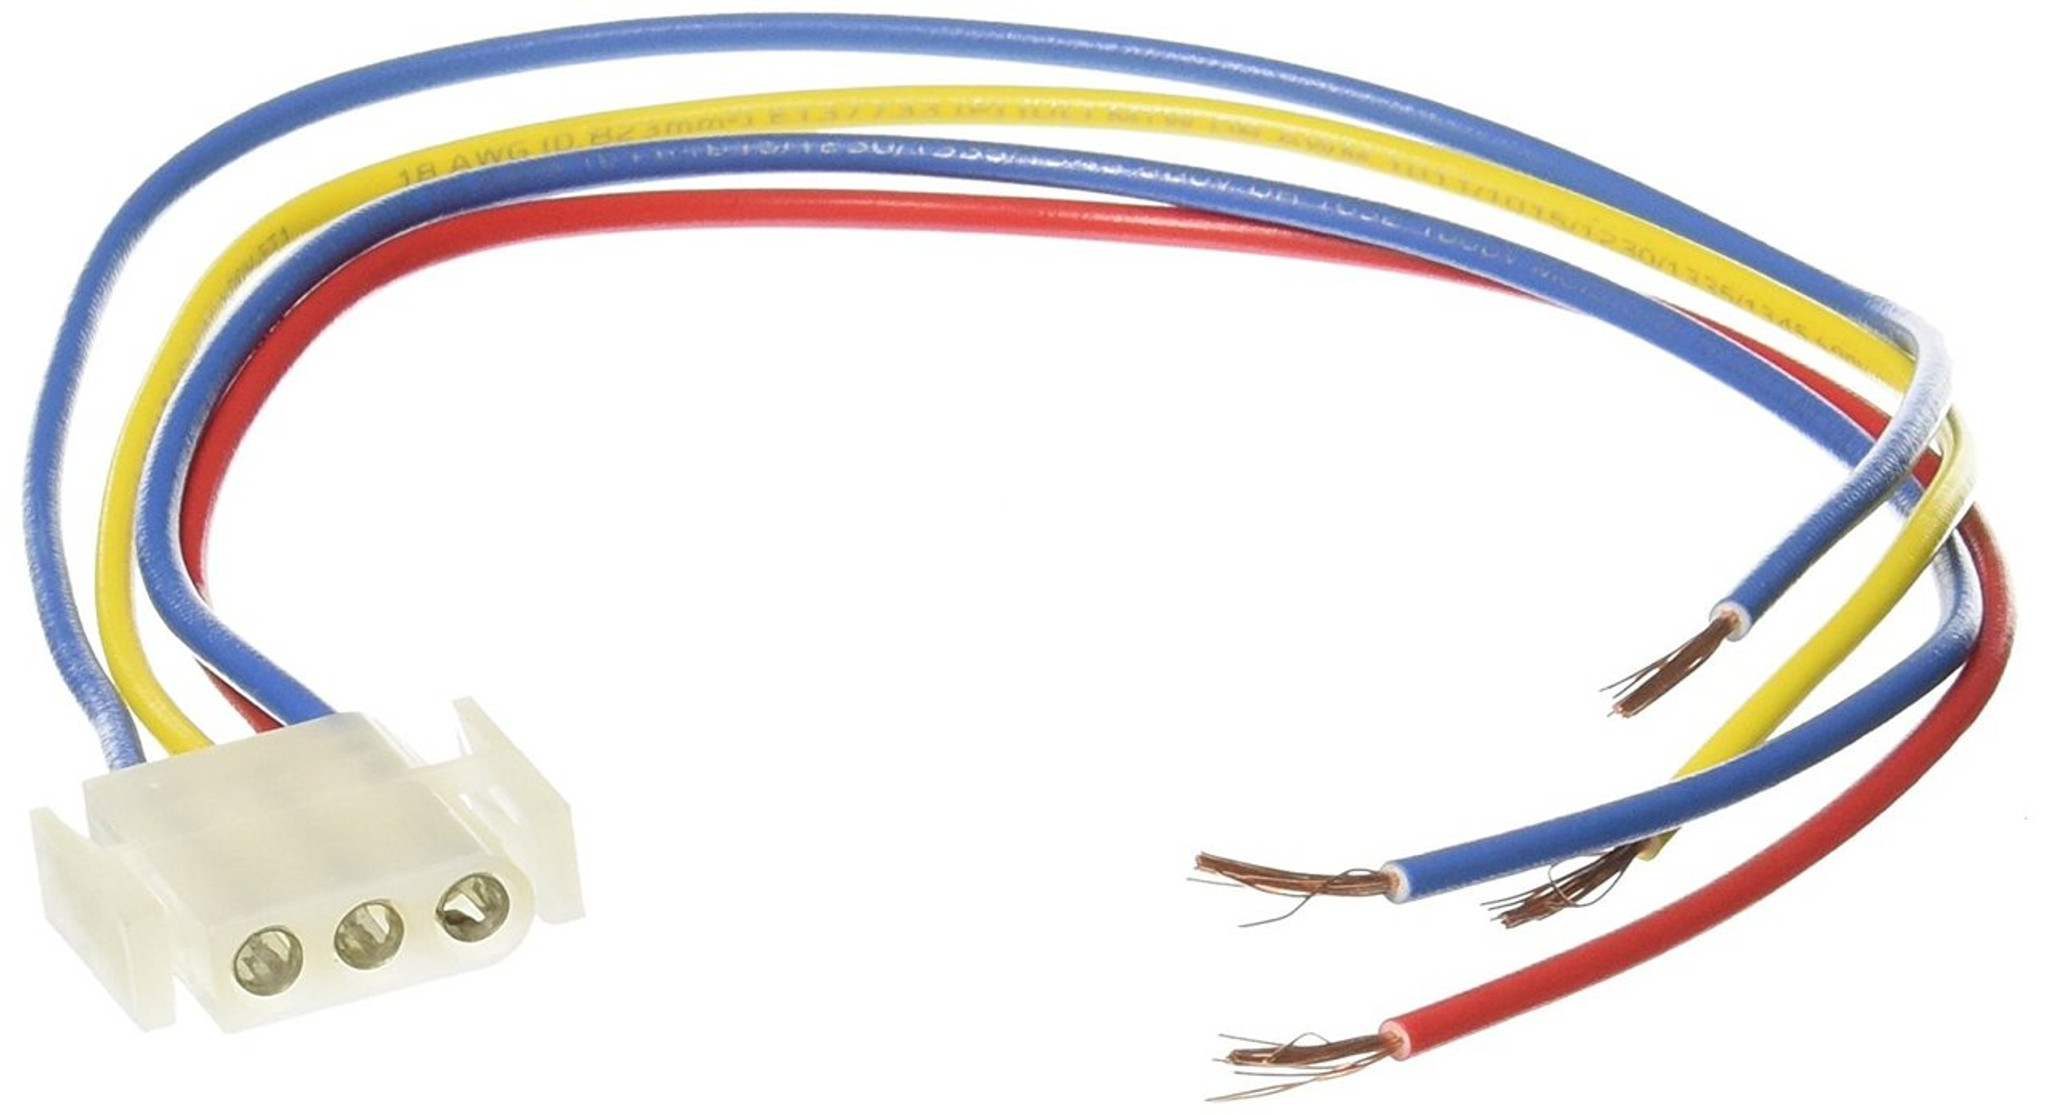 medium resolution of suburban furnace power supply wire harness 520322 3 pin female